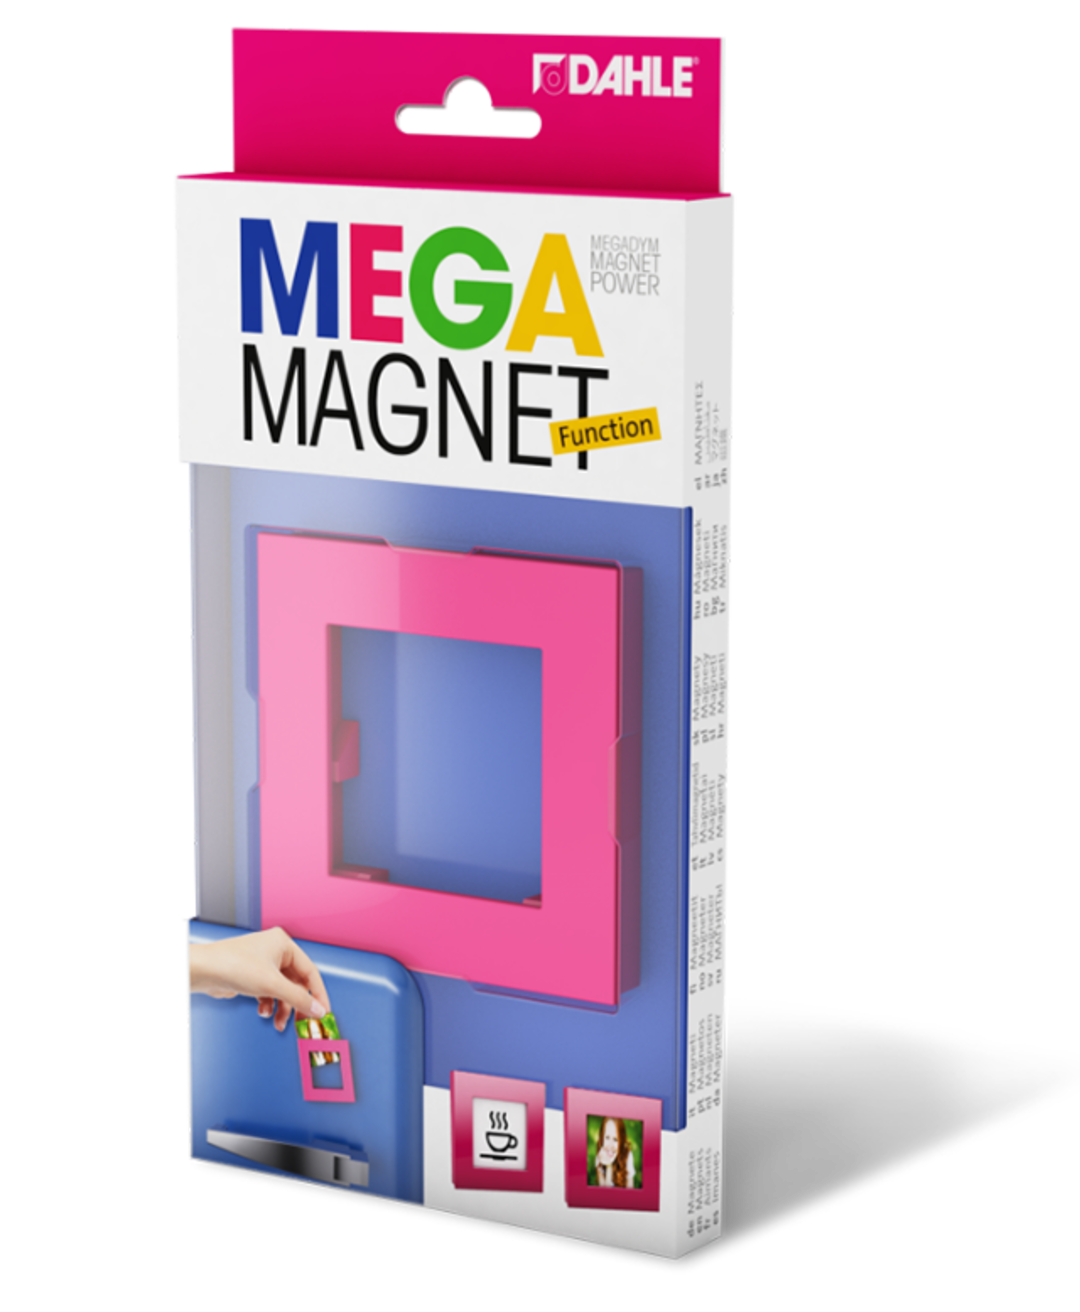 [Translate to English:] Verpackung von Dahle MEGA Magnet